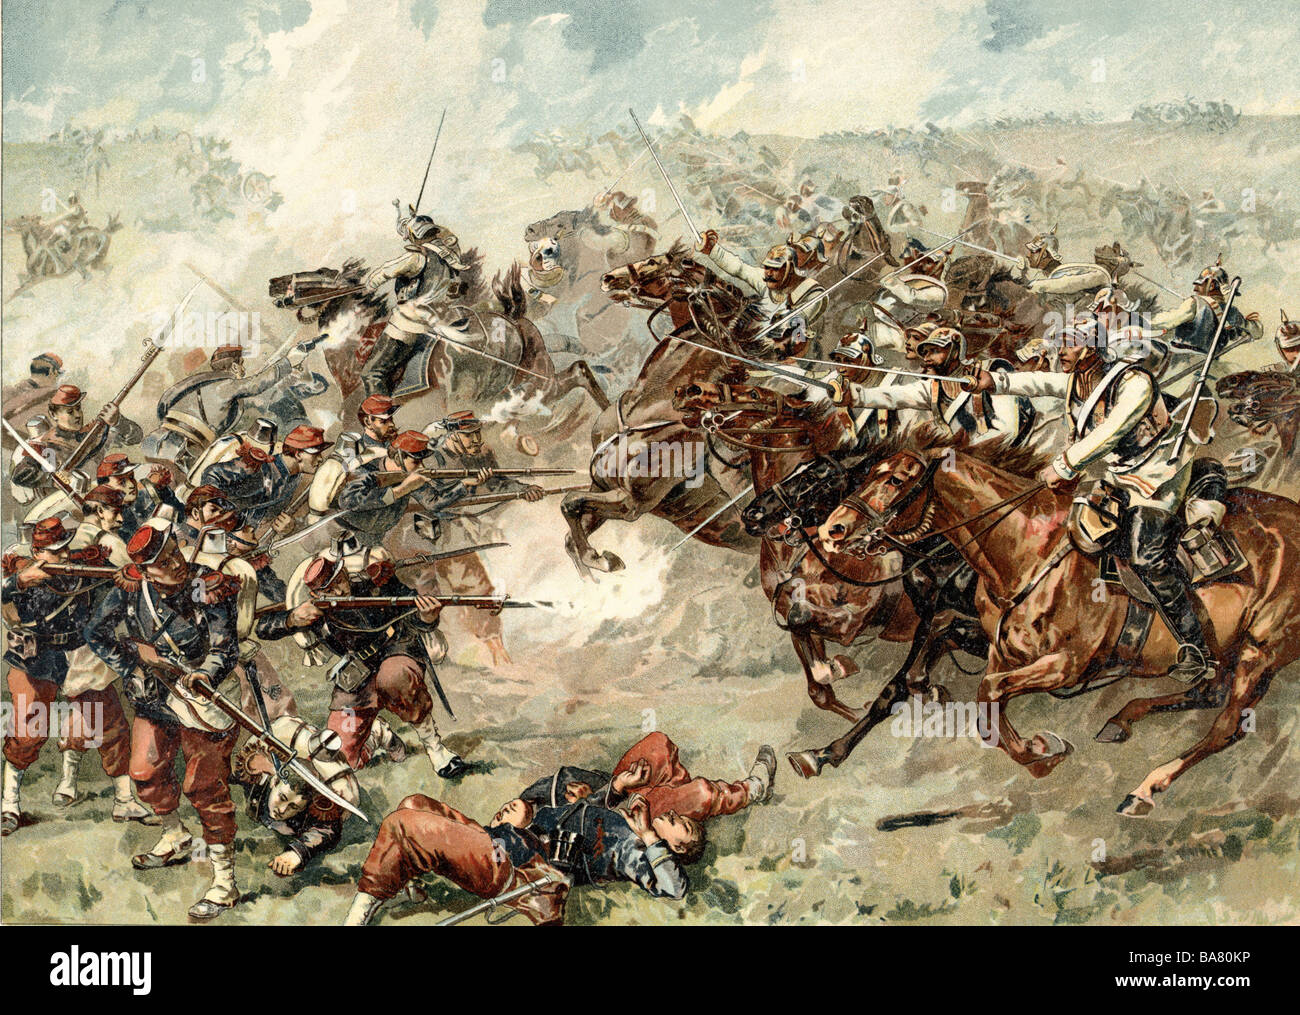 events, Franco-Prussian War 1870 - 1871, Battle of Mars-la-Tour, 16.8.1870, charge of Bredow's Brigade, colour - Stock Image